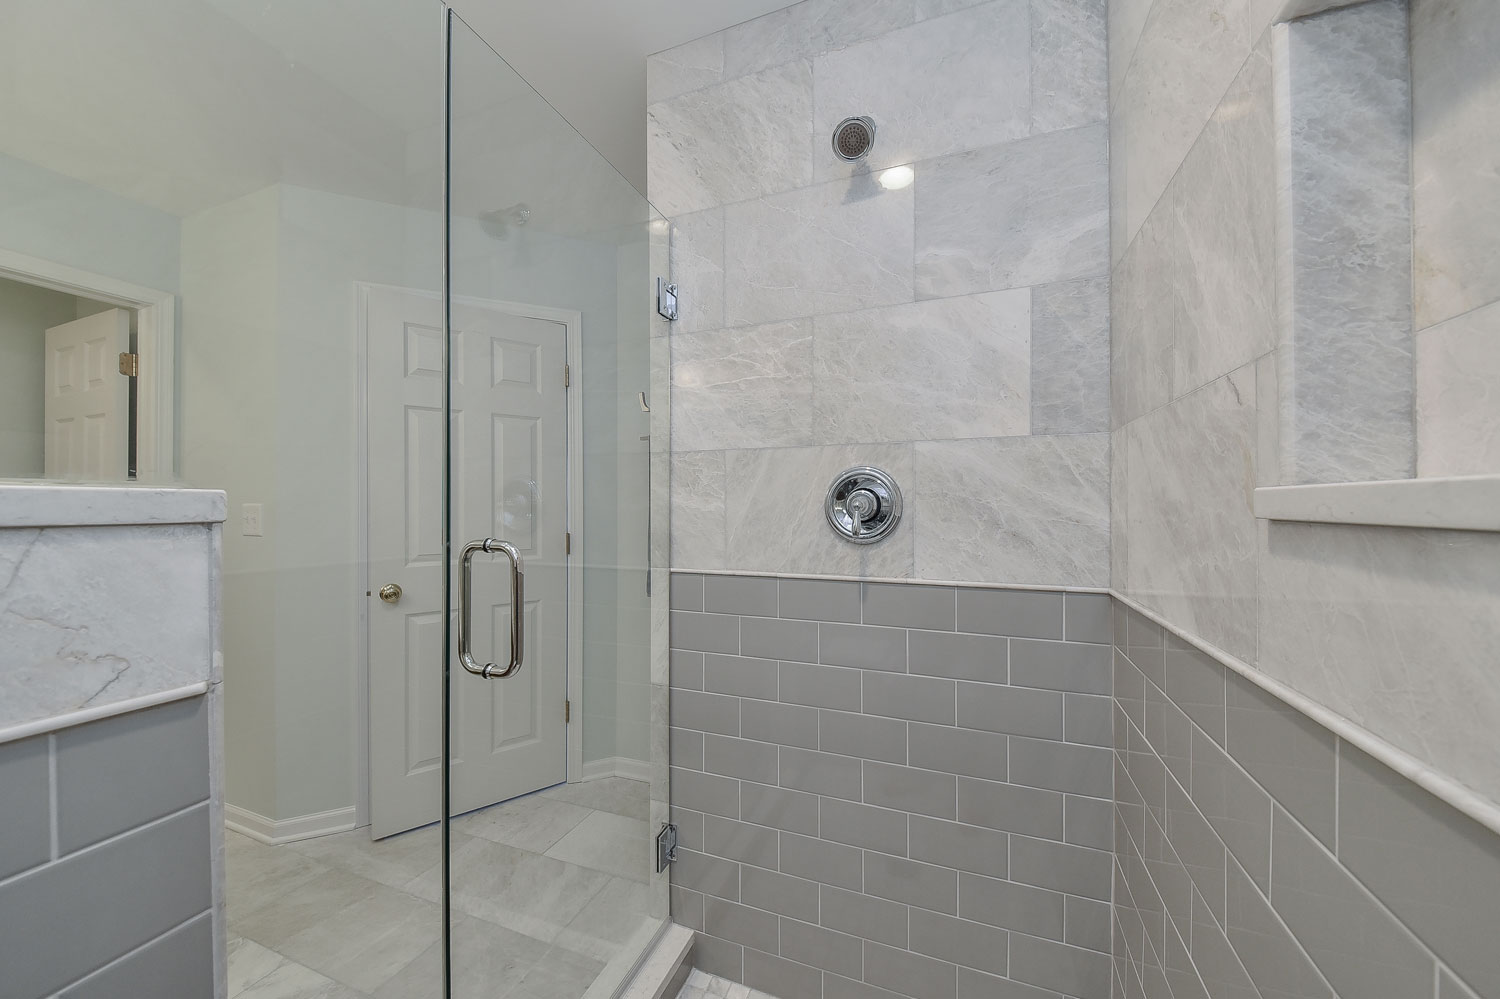 Lisle Master Bathroom Remodel Quartz Grey Subway Tile Walk In Shower